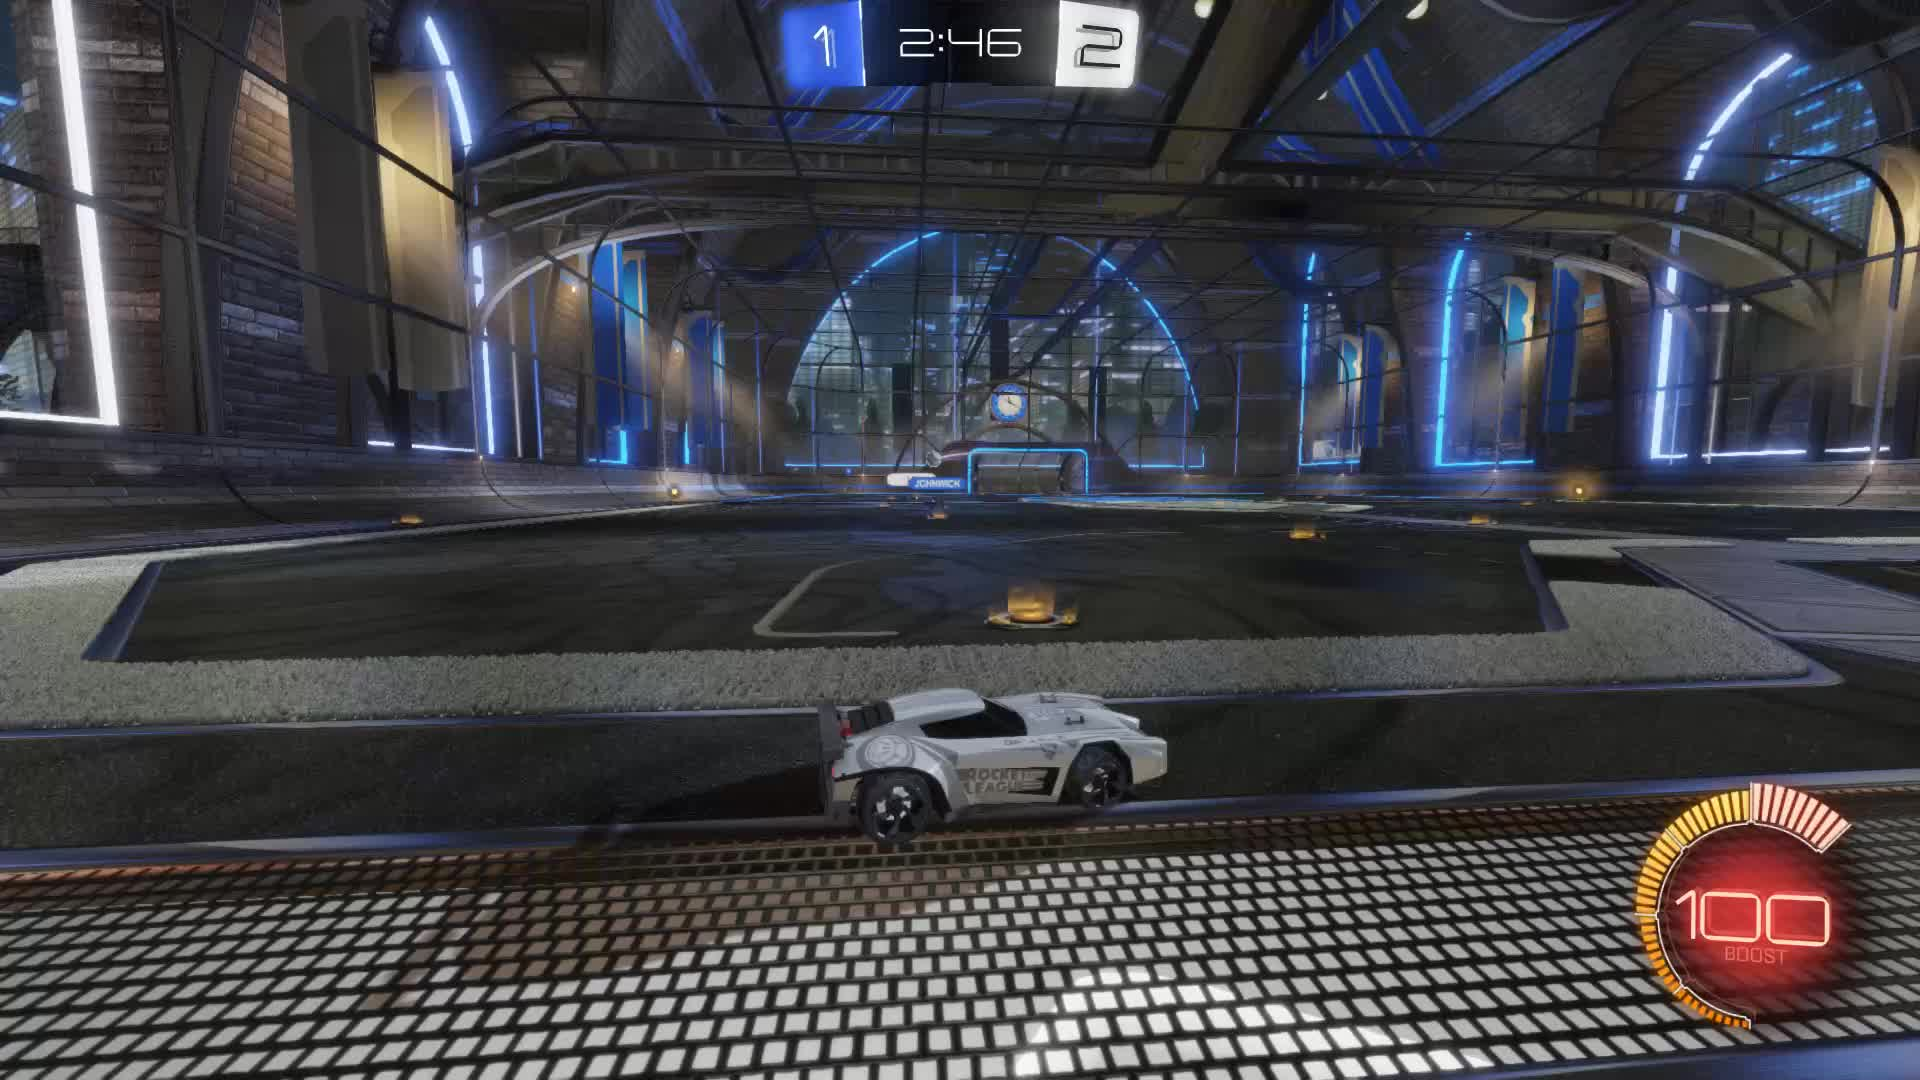 Gif Your Game, GifYourGame, Goal, Rocket League, RocketLeague, Tek, Goal 4: Tek GIFs